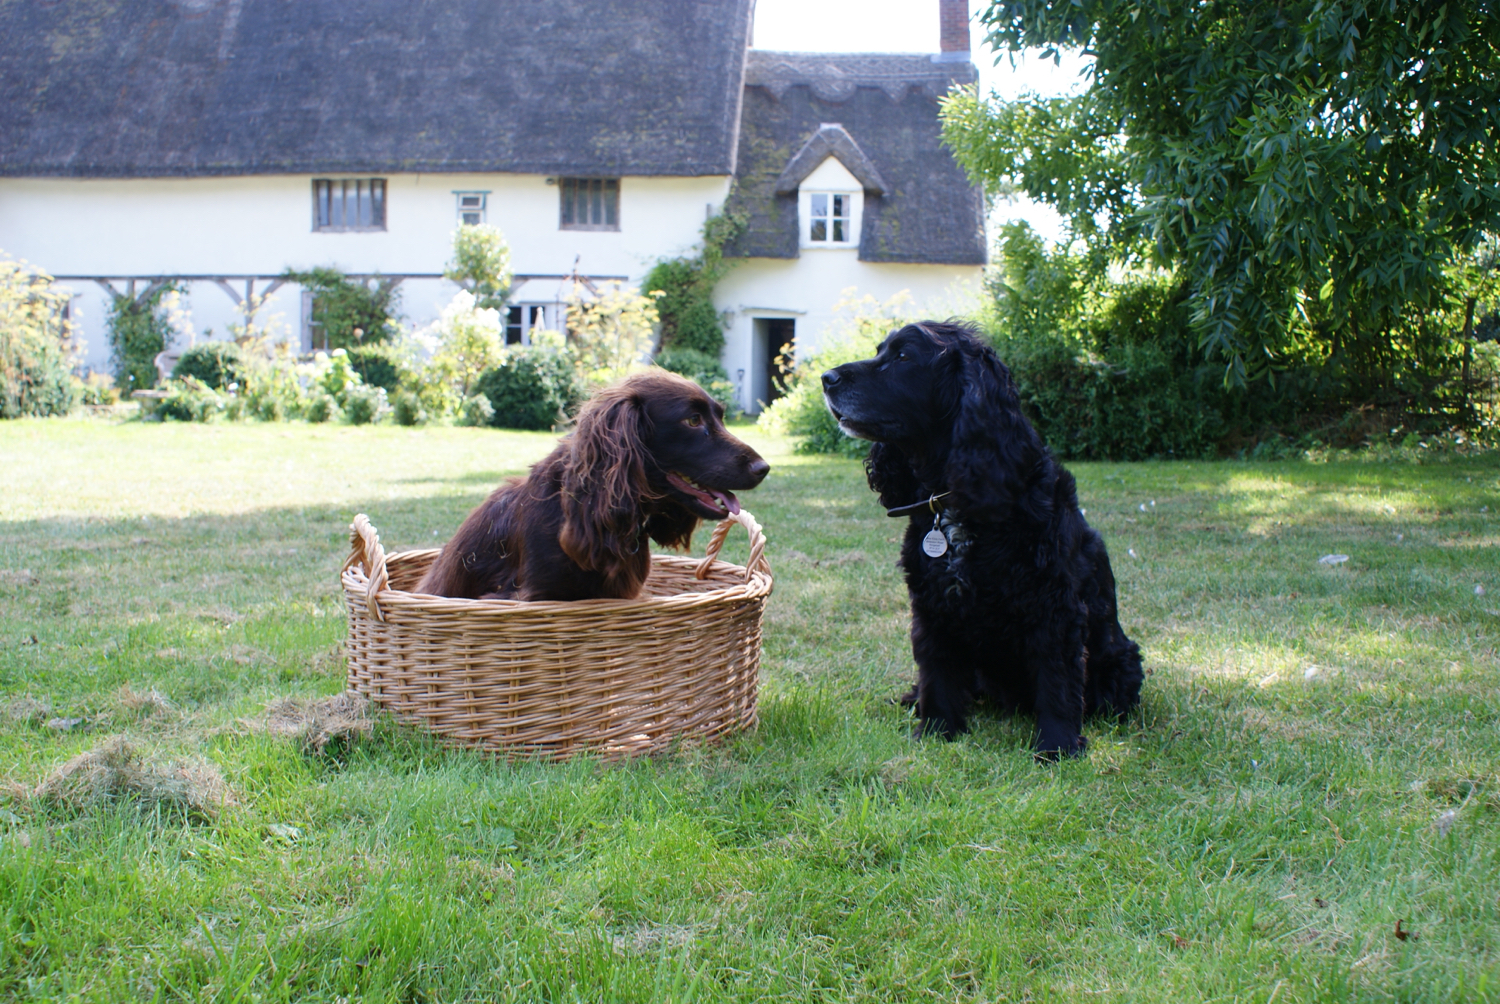 'Panier Circulaire'  Round Wicker Basket found in France, modelled by Fig & Hattie at Rosehip HQ.